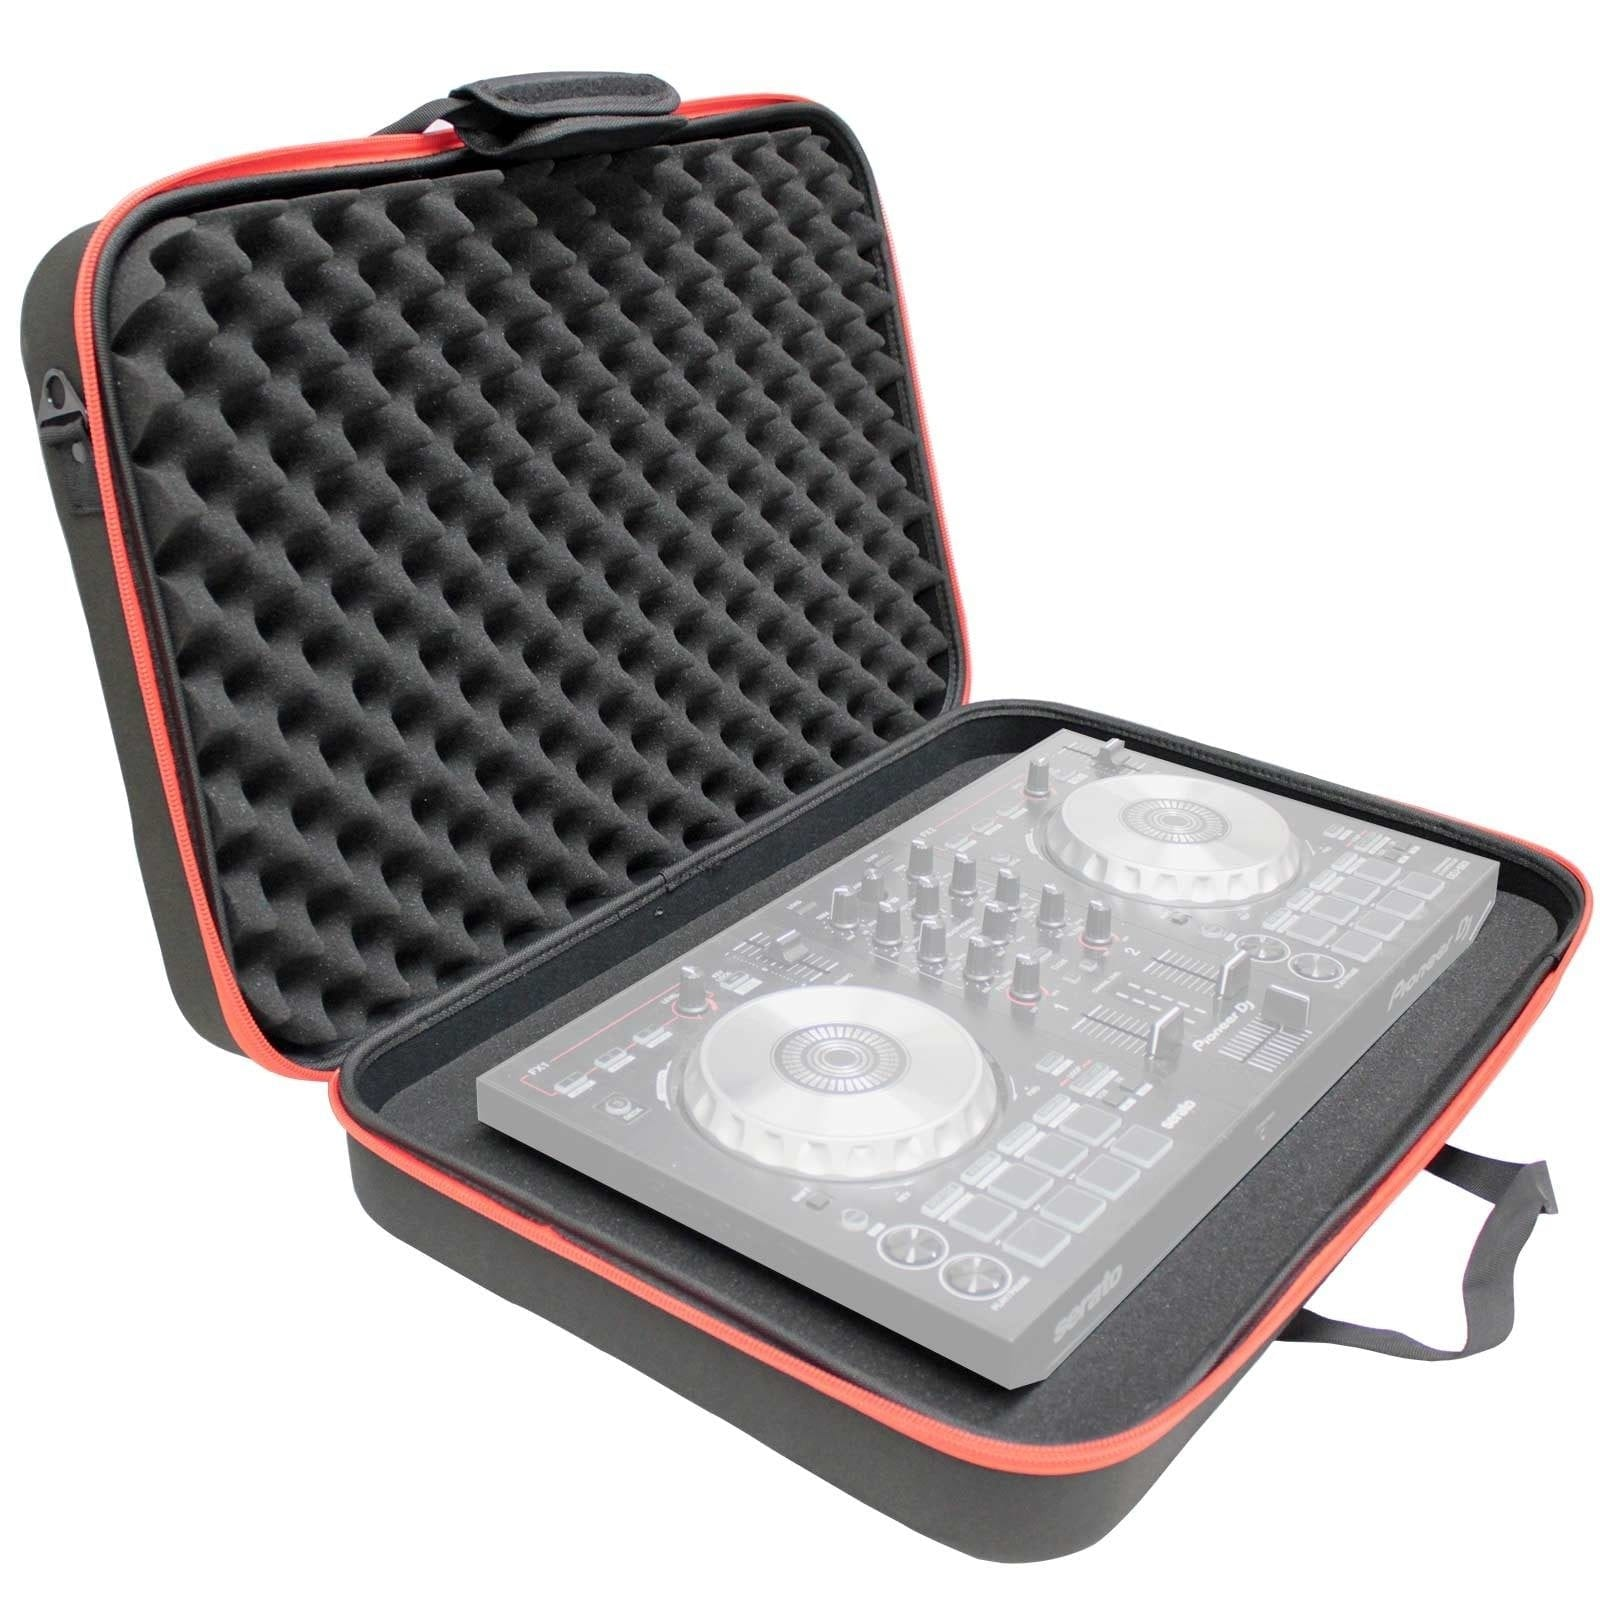 prox-xb-djcs-small-dj-controller-zerog-ultra-lightweight-eva-molded-hard-shell-bag-30a